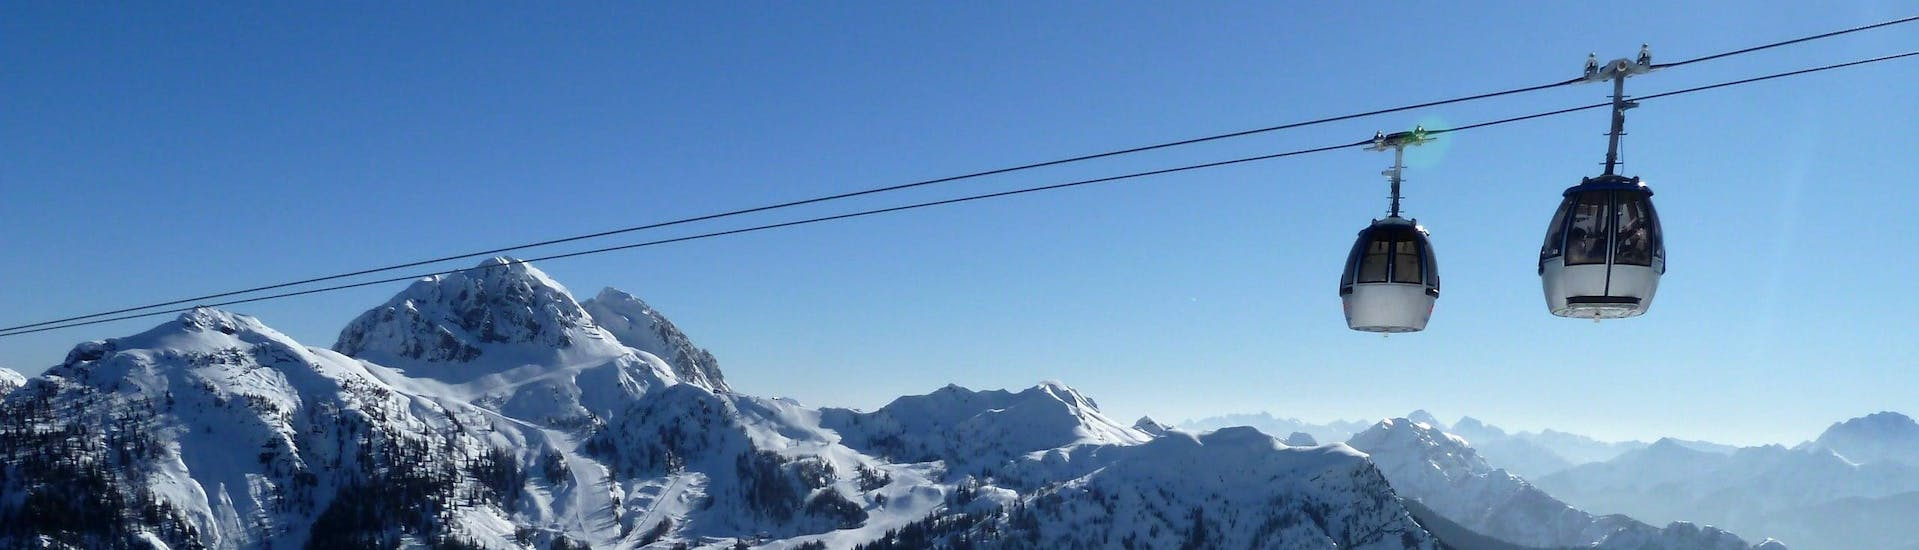 View over the sunny mountain landscape while learning to ski with the ski schools in Nassfeld.